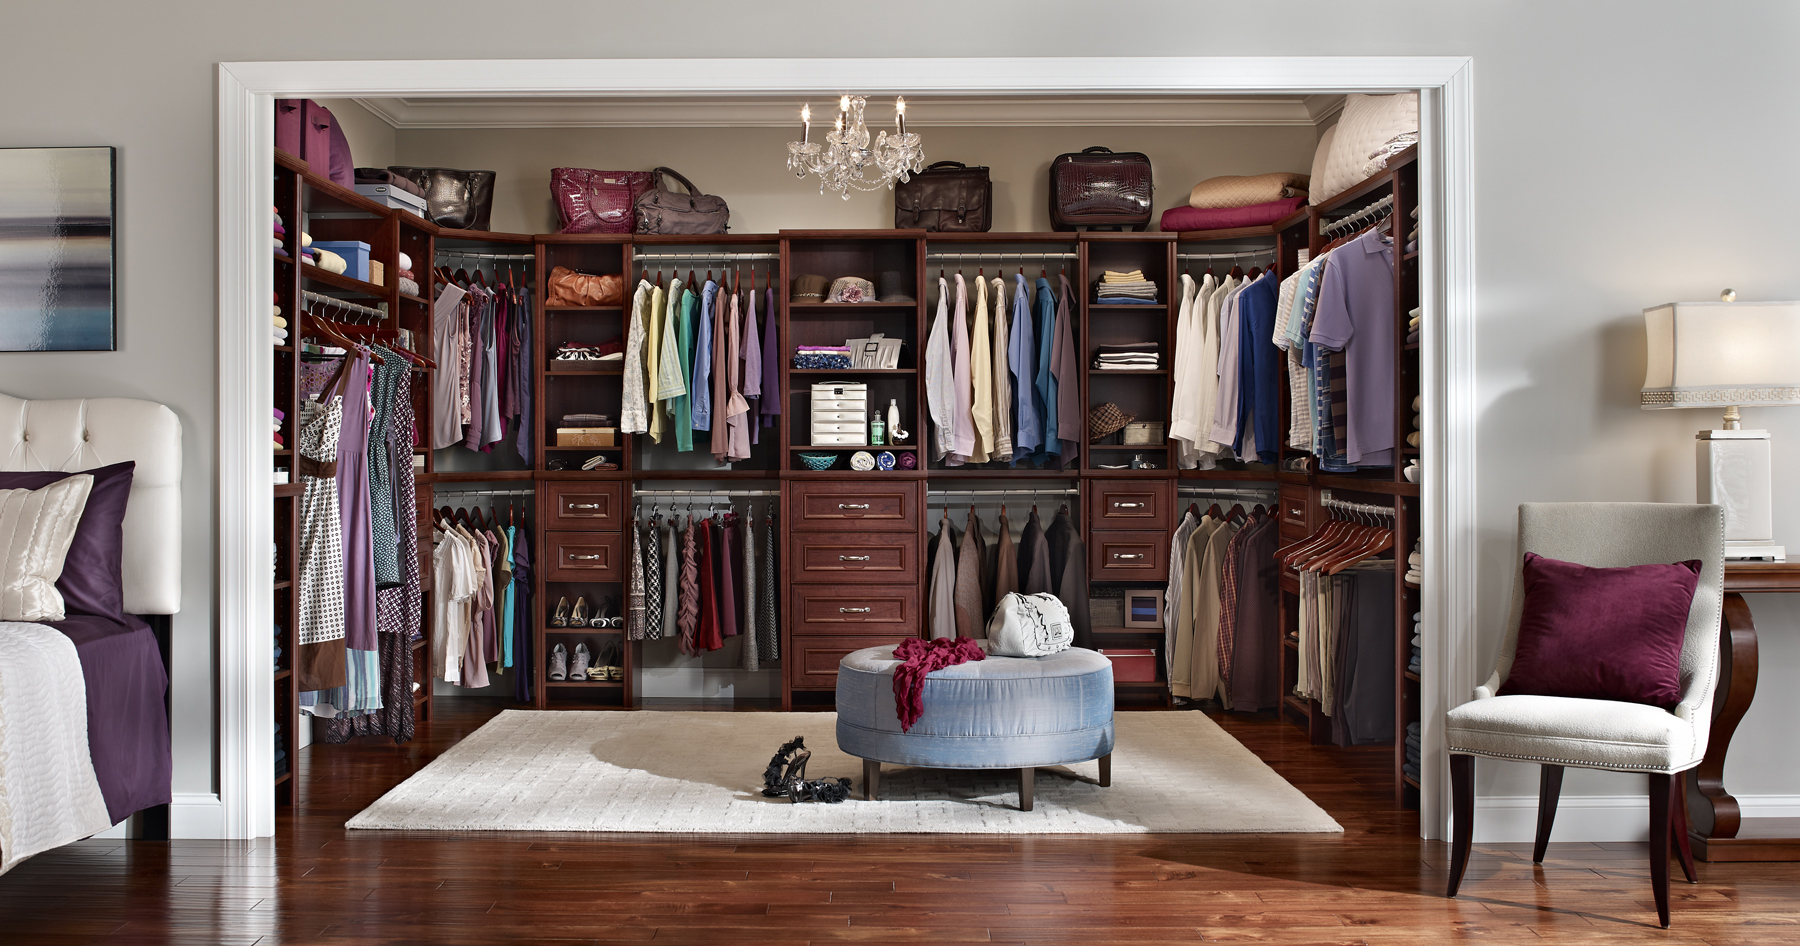 Master Bedroom Closet With Closetmaid Impressions The New Diy Laminate Storage System In Dark